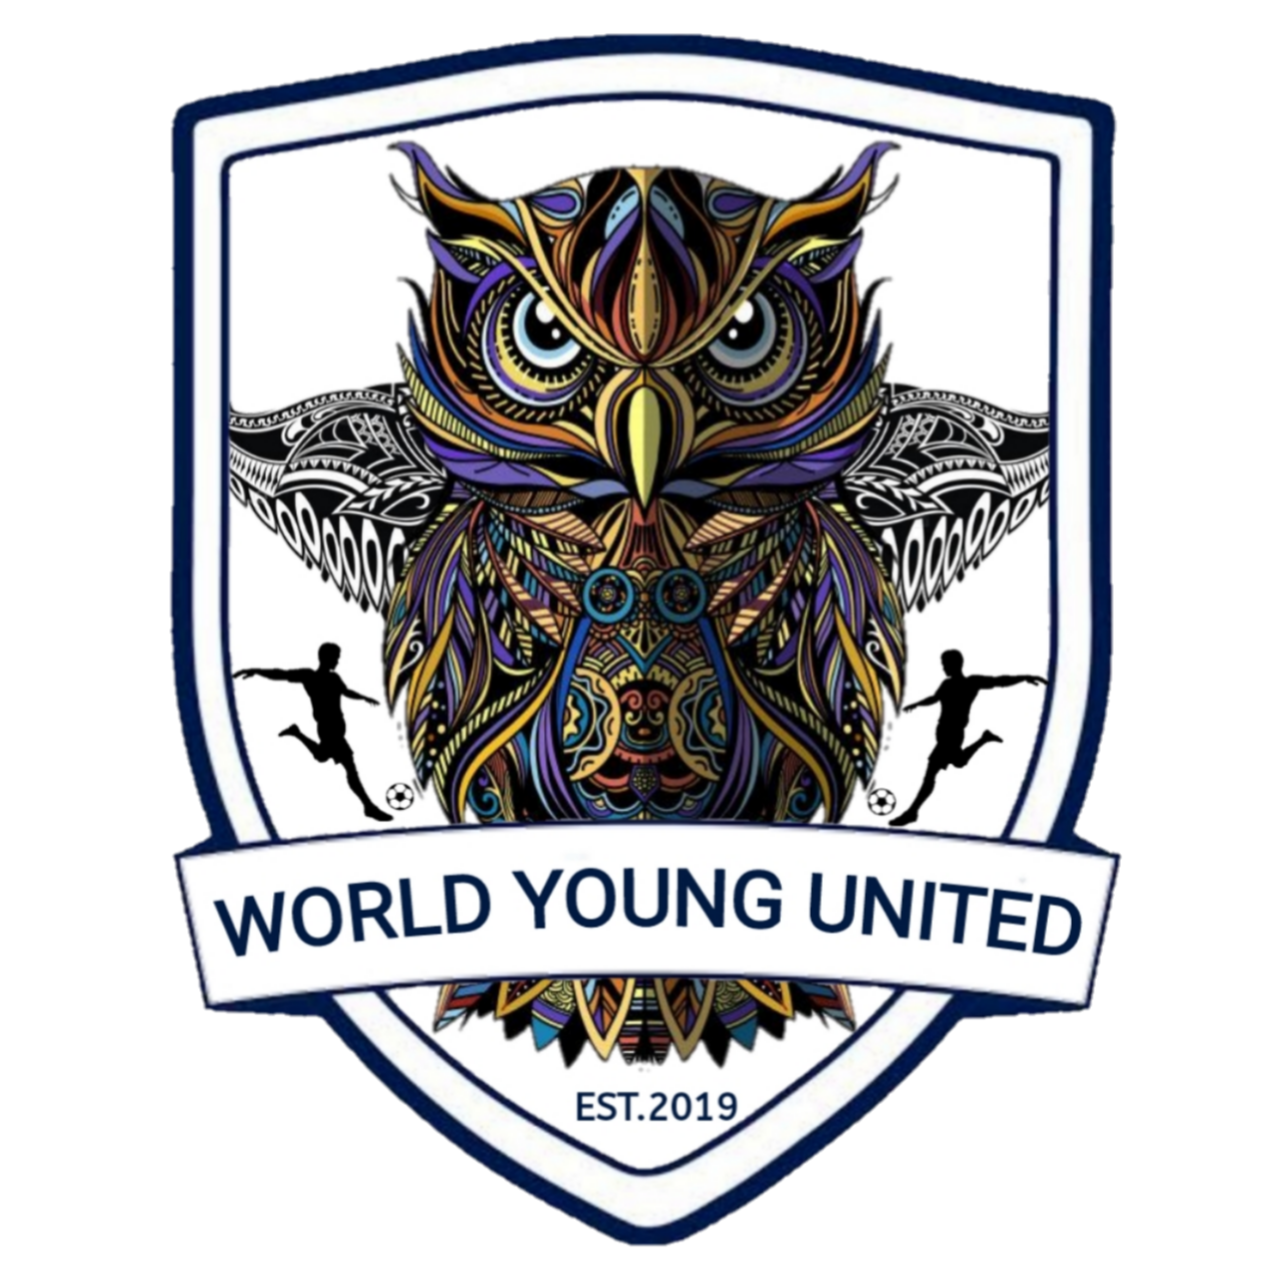 WORLD YOUNG UNITED